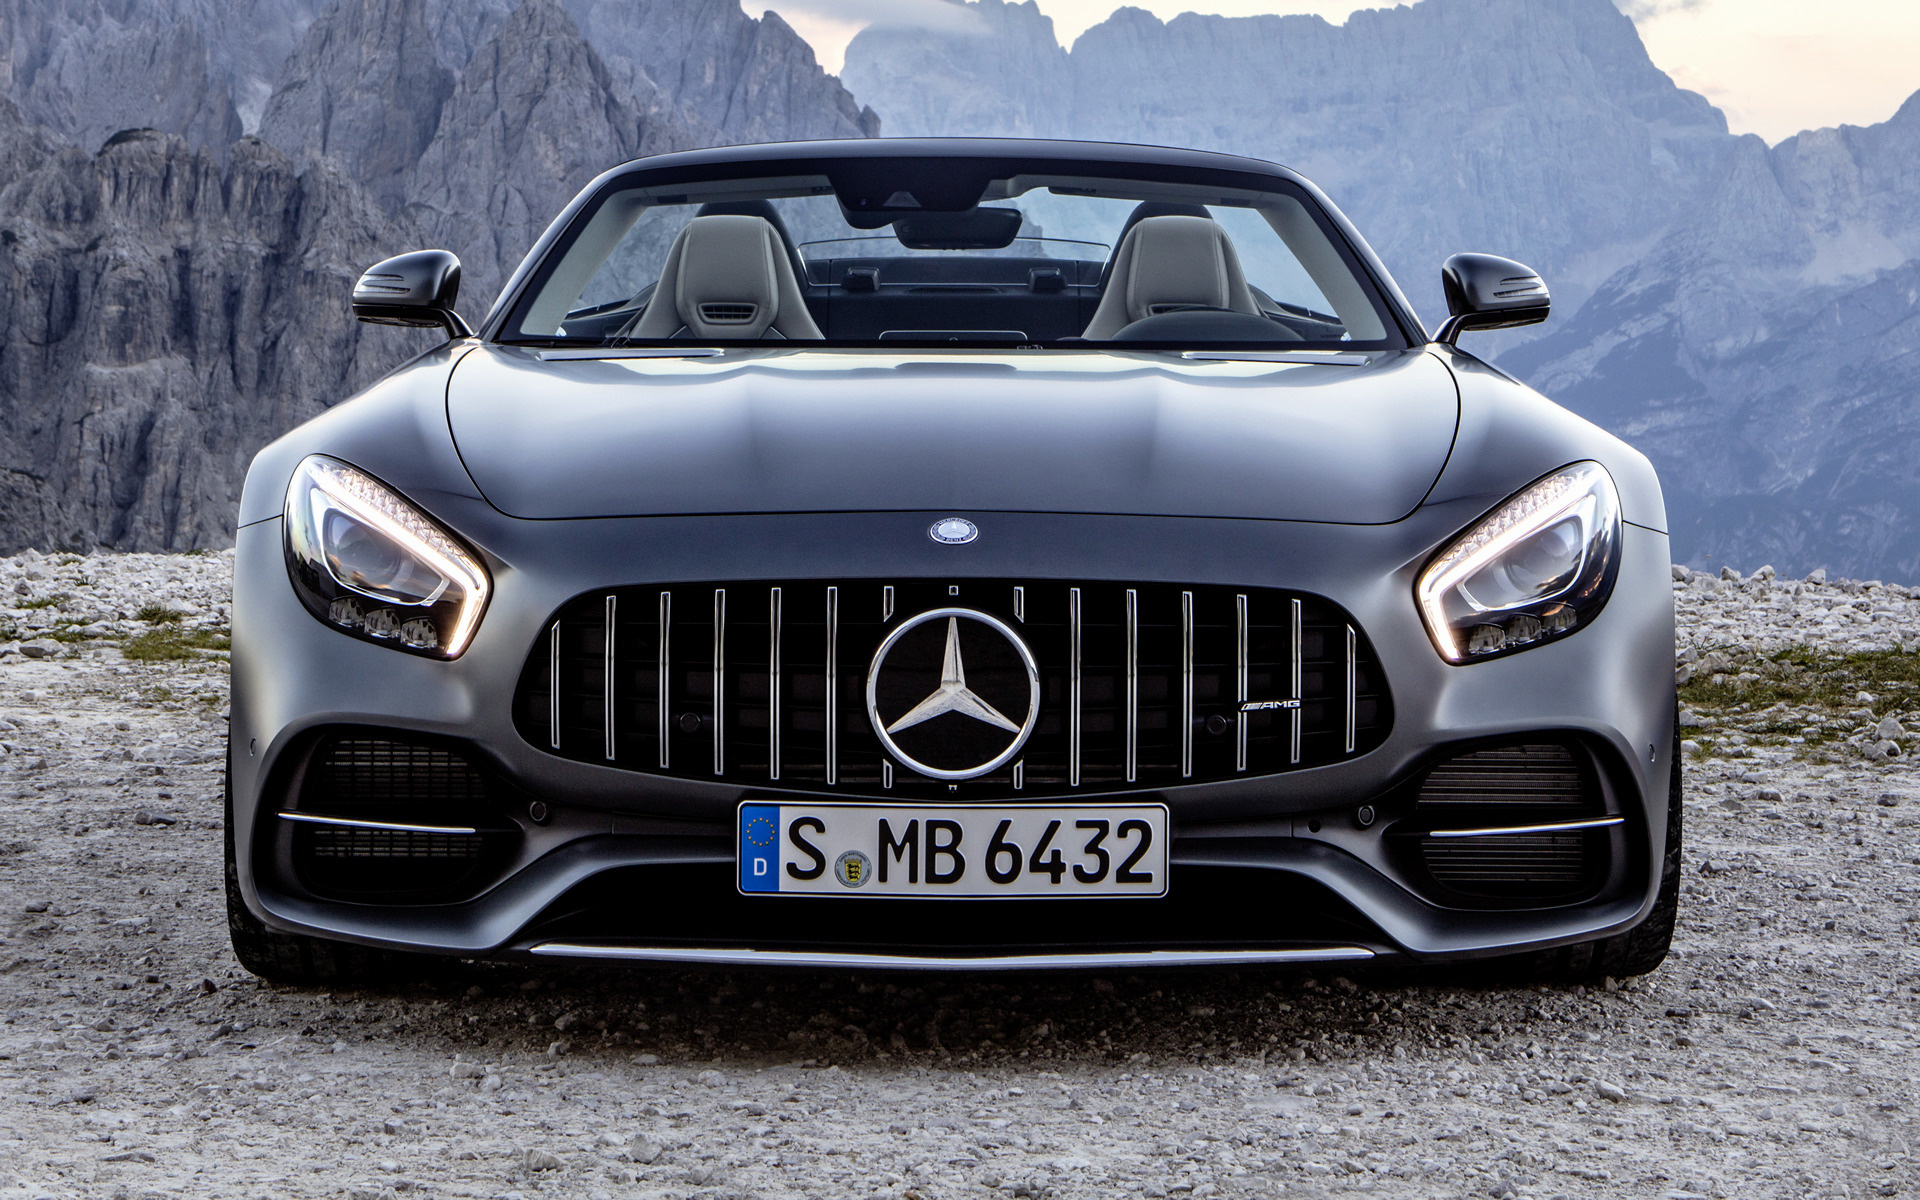 Mercedes Amg Gt R >> 2016 Mercedes-AMG GT C Roadster - Wallpapers and HD Images ...